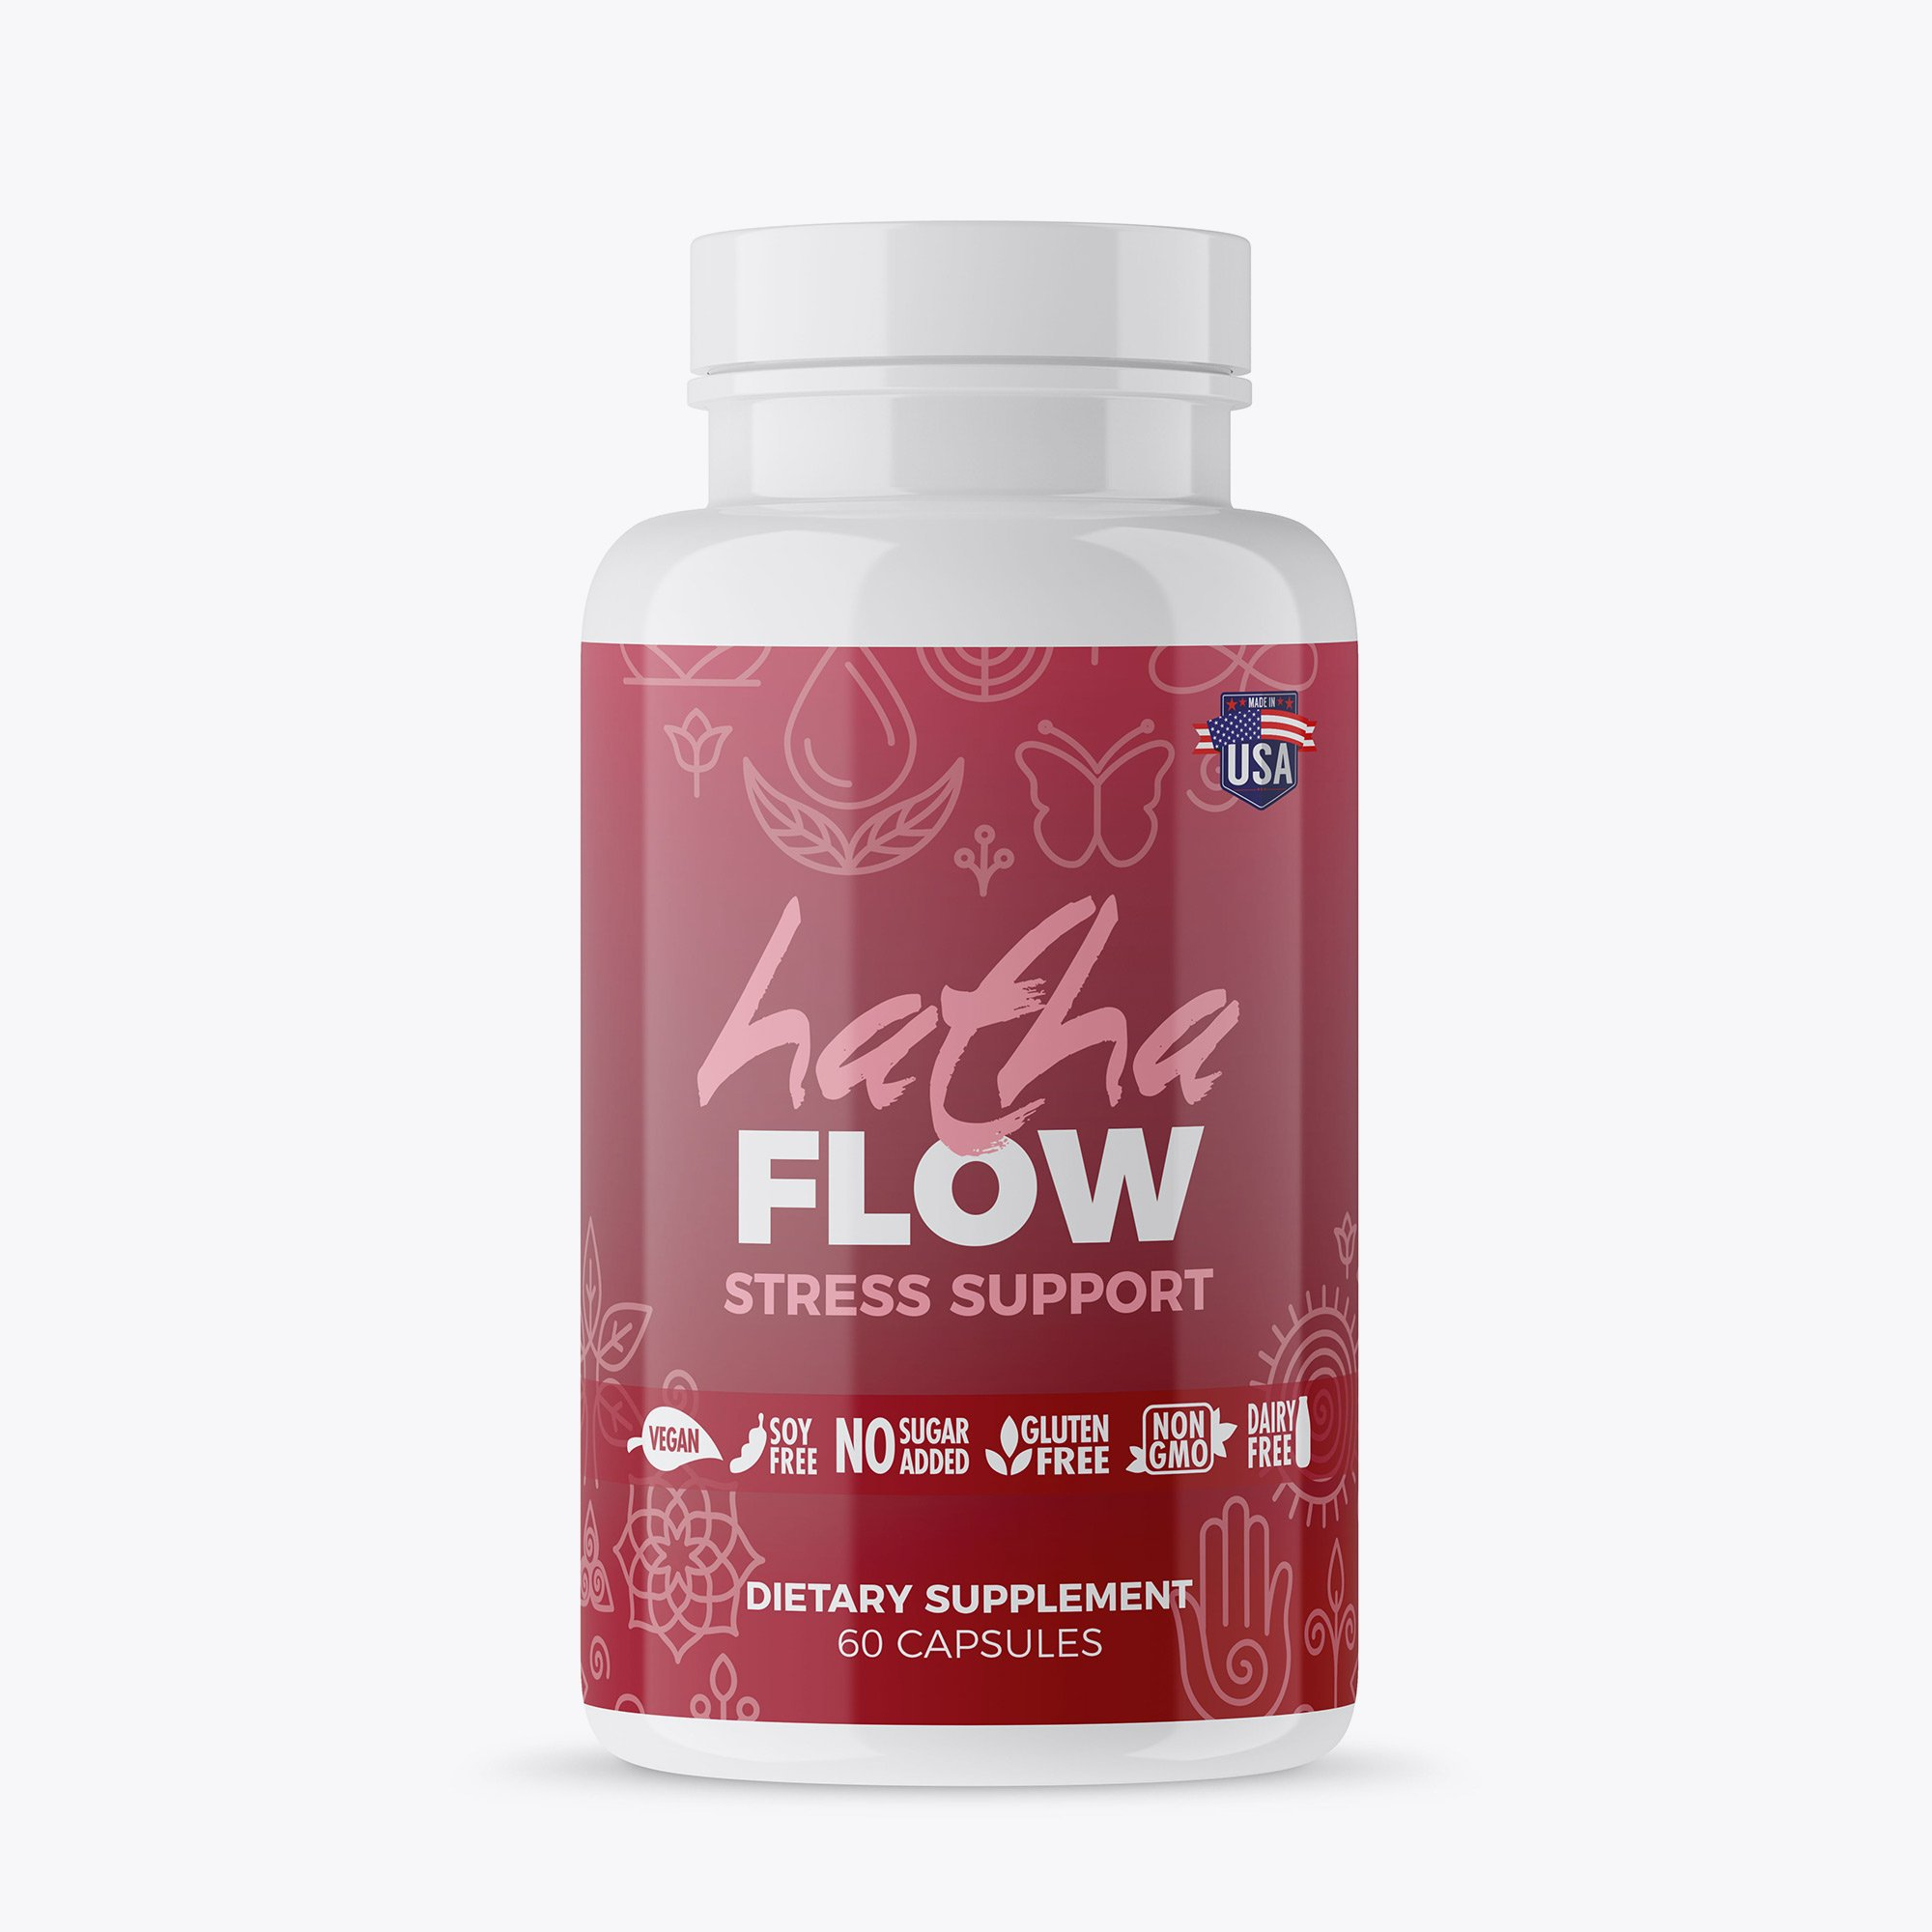 Image of Hatha Flow Stress Support